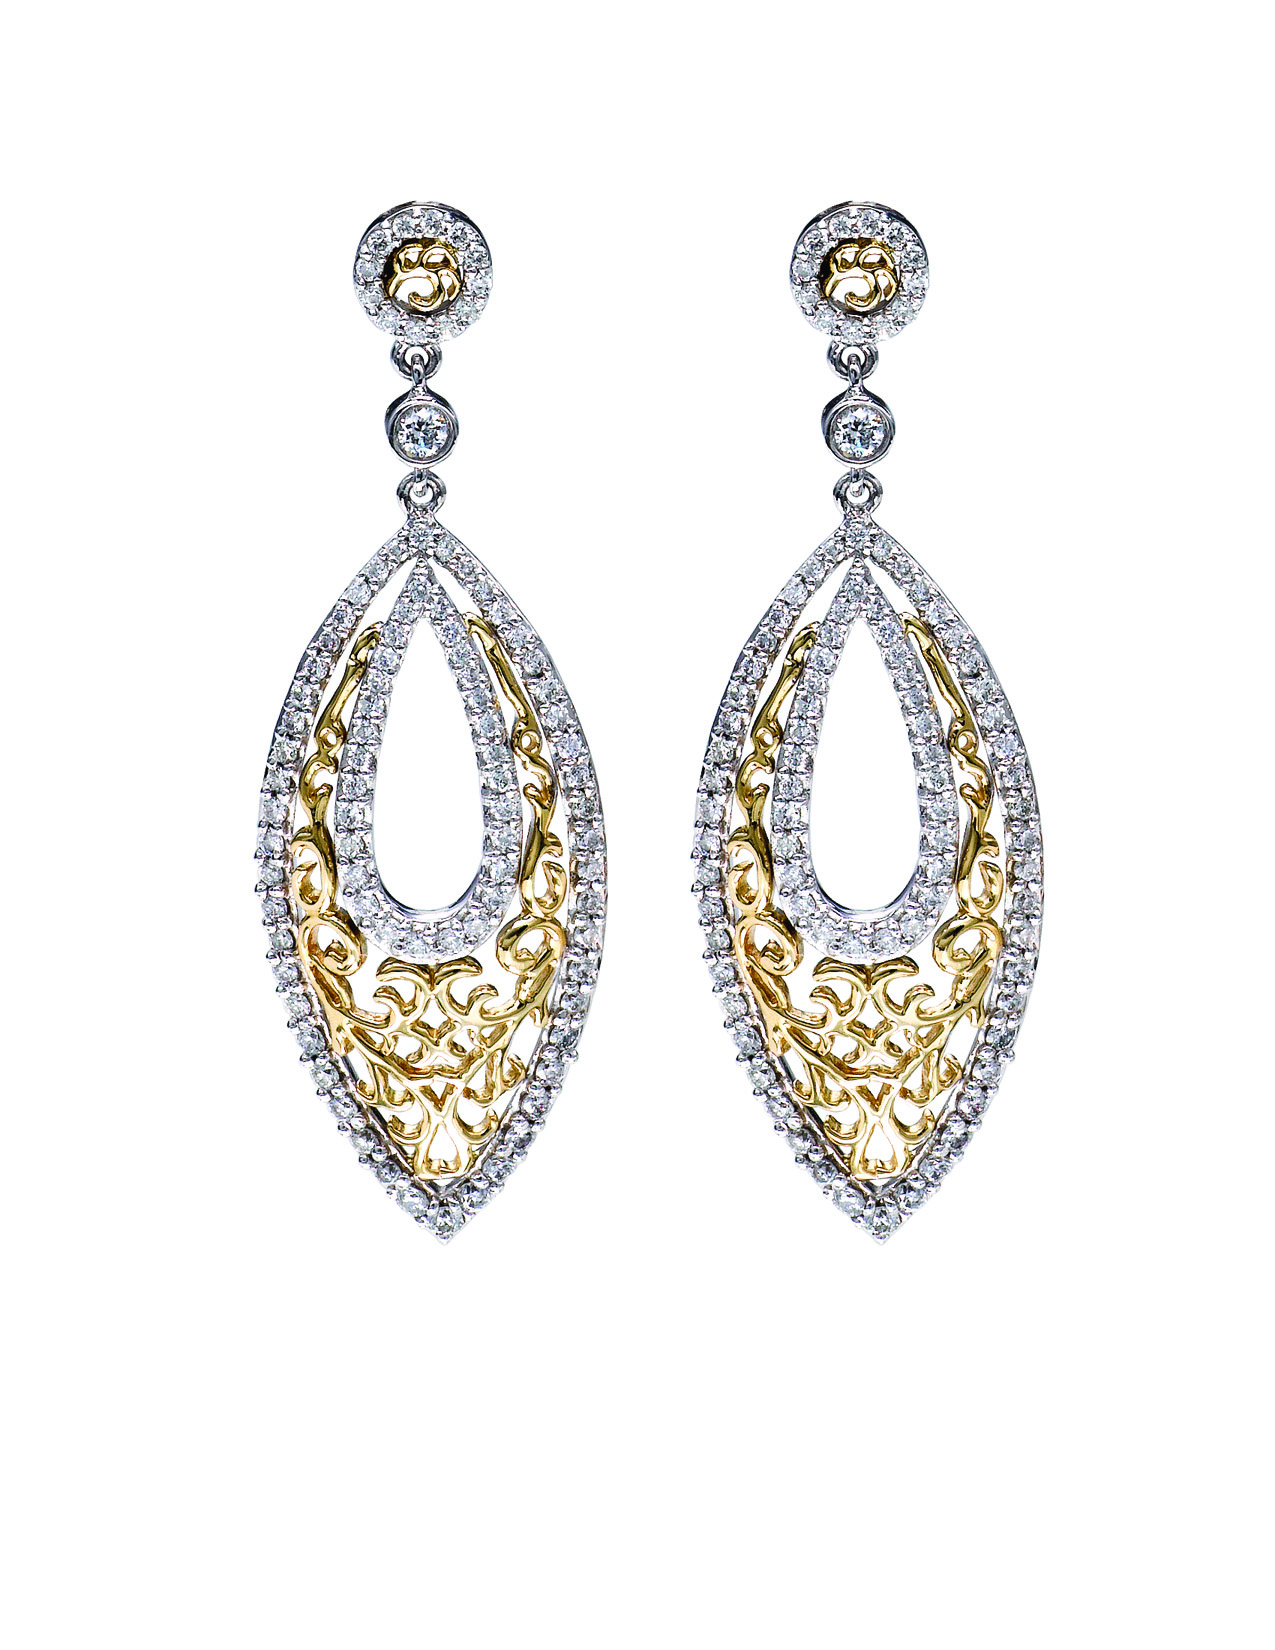 White & Yellow Gold Filigre Diamond Earrings